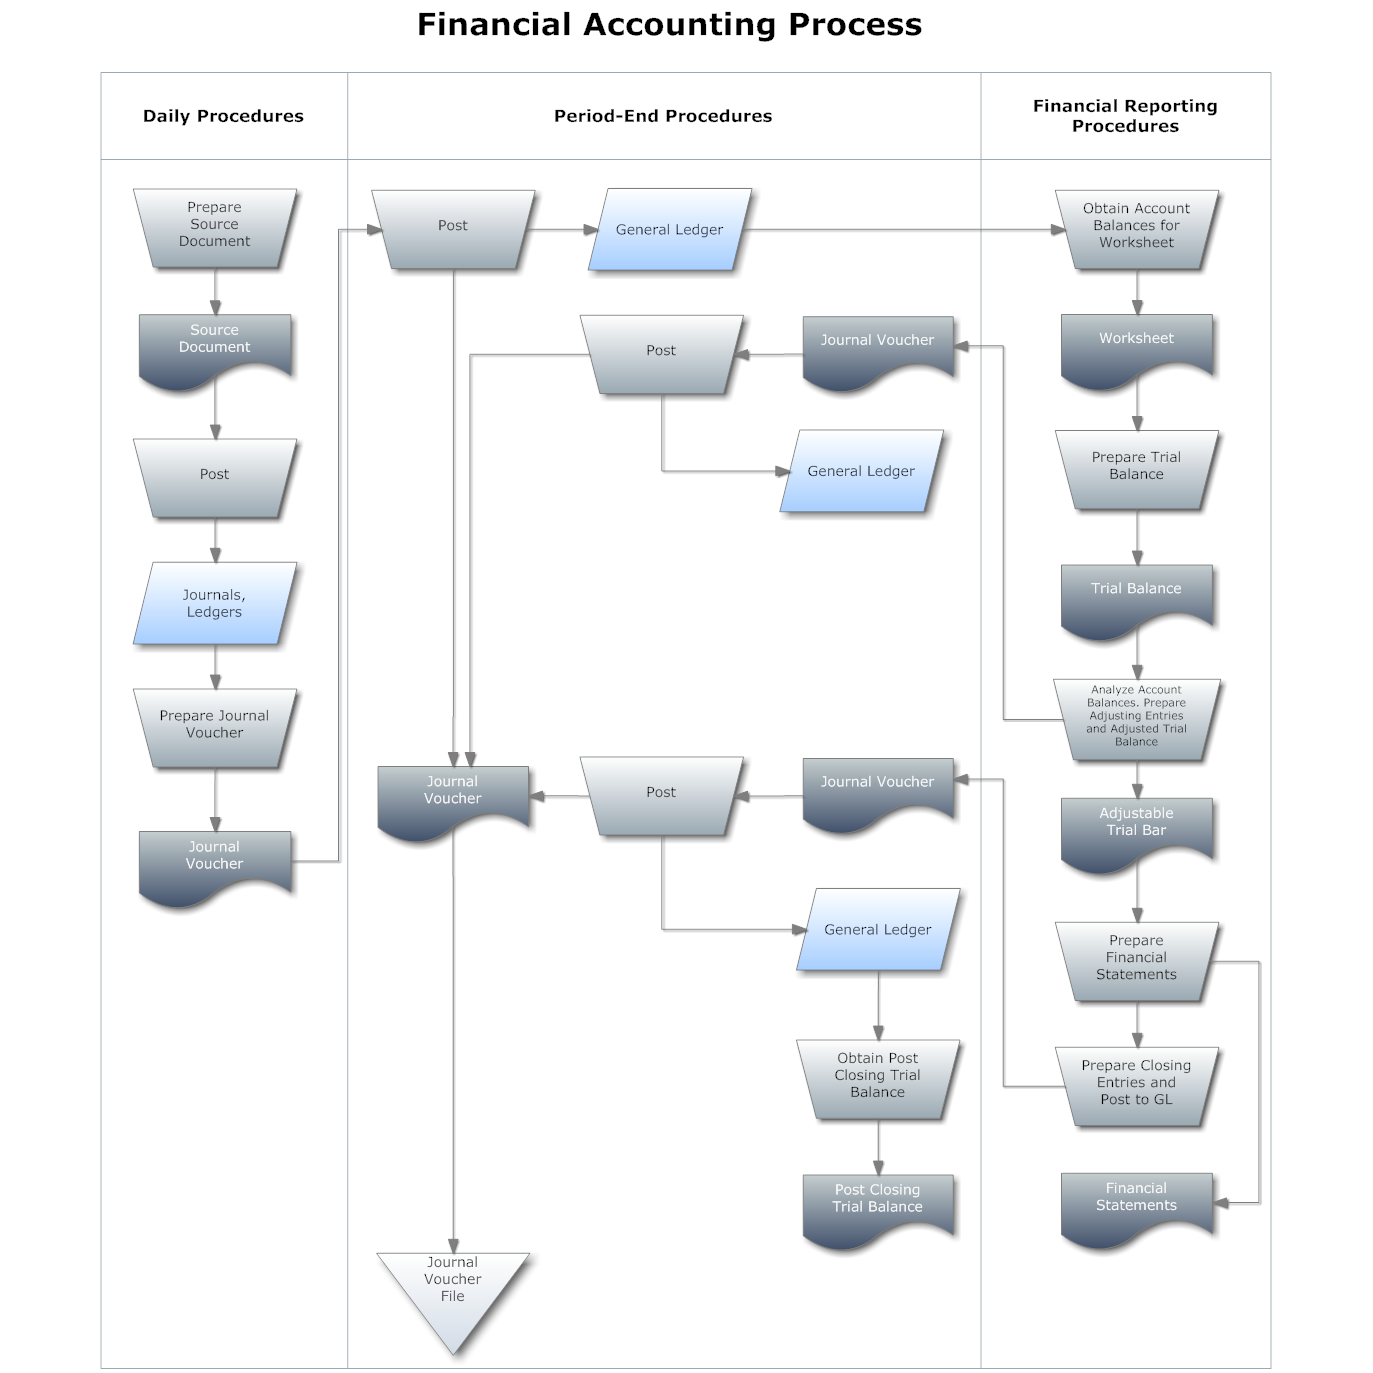 Flowchart Example - Financial Accounting Process